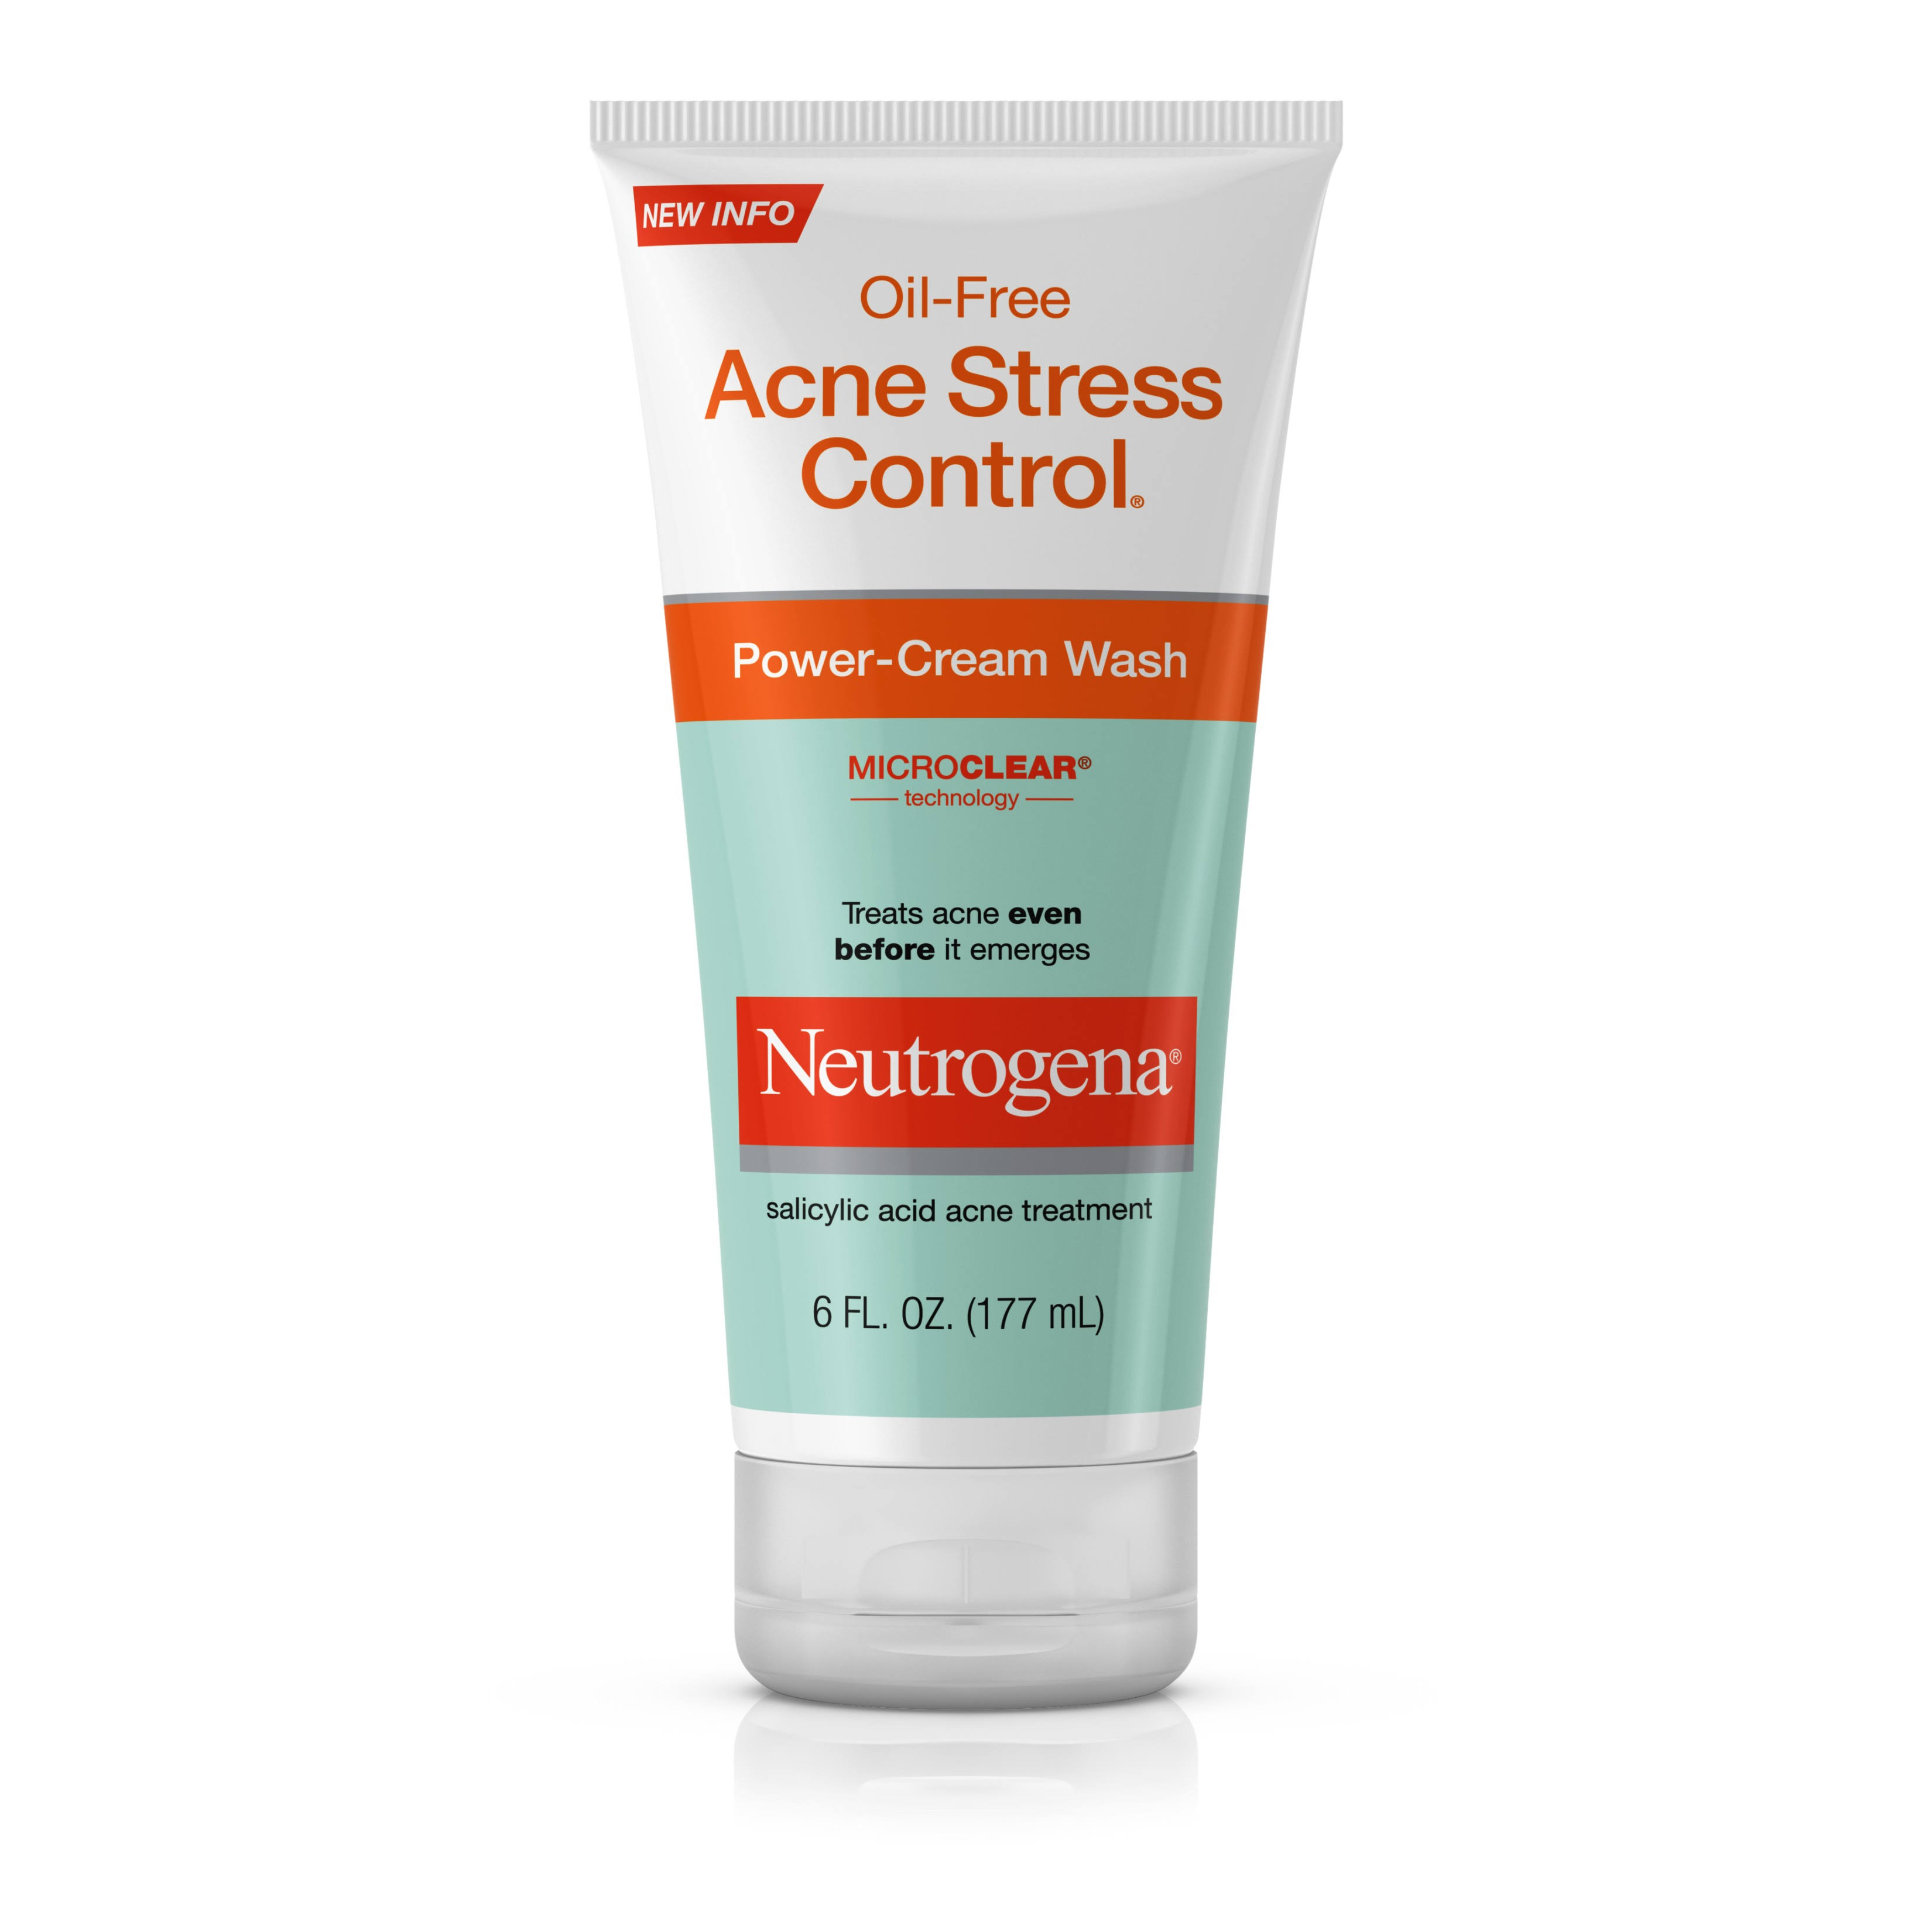 Neutrogena Oil-Free Acne Stress Control Power-Cream Wash - 6oz